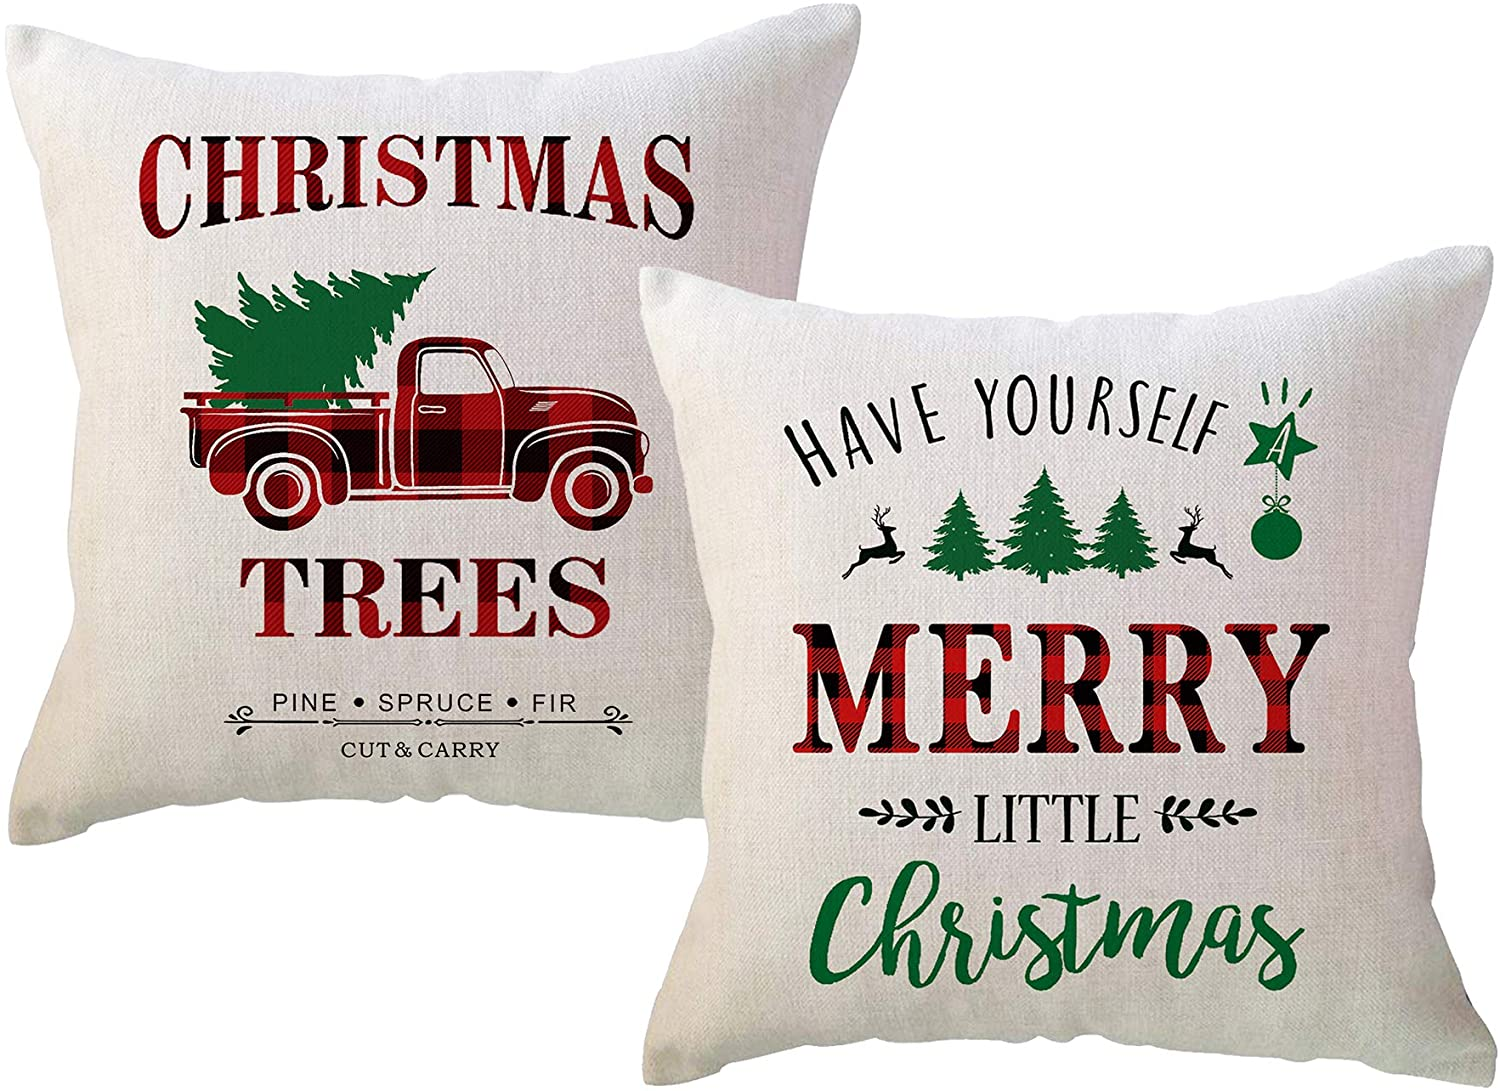 Red/Green Christmas Throw Pillow Covers Have Yourself A Merry Little Christmas with Vintage Xmas Truck Farmhouse Winter Holiday Decorative Cushion Pillowcases for Sofa Couch 18 x 18 Inches,Set of 2